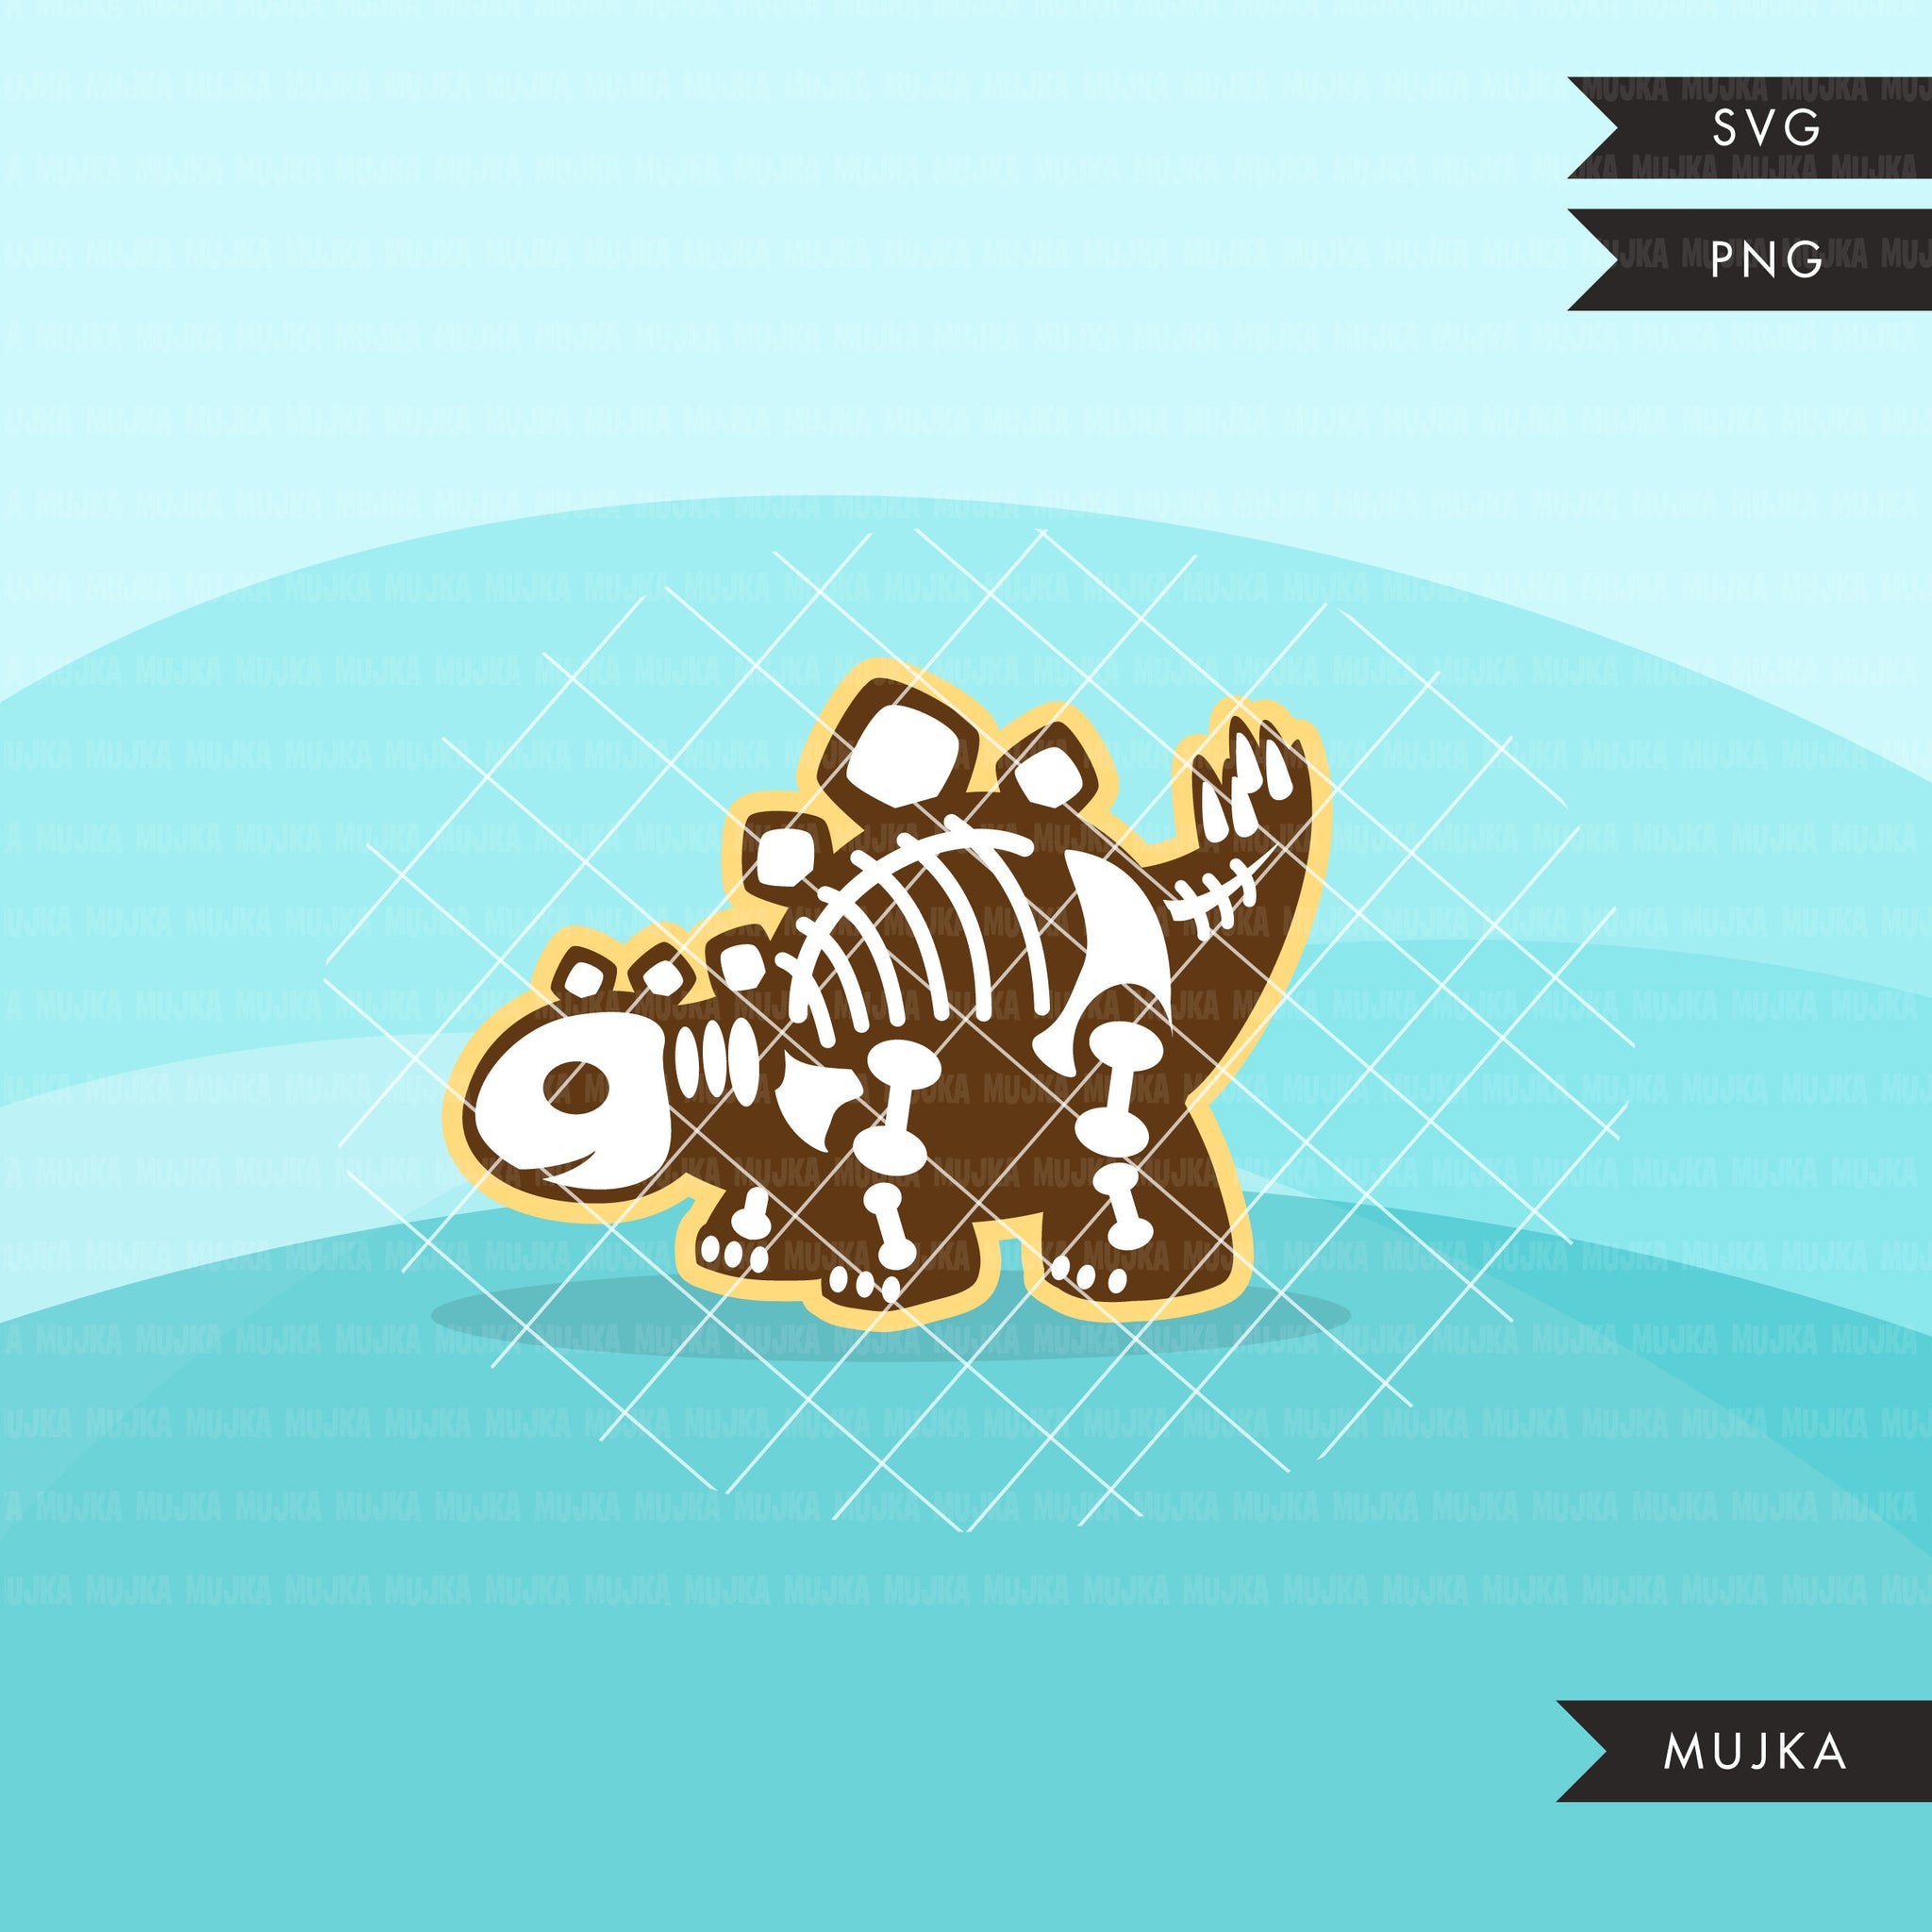 Dinosaur skeleton, animal SVG cutting file